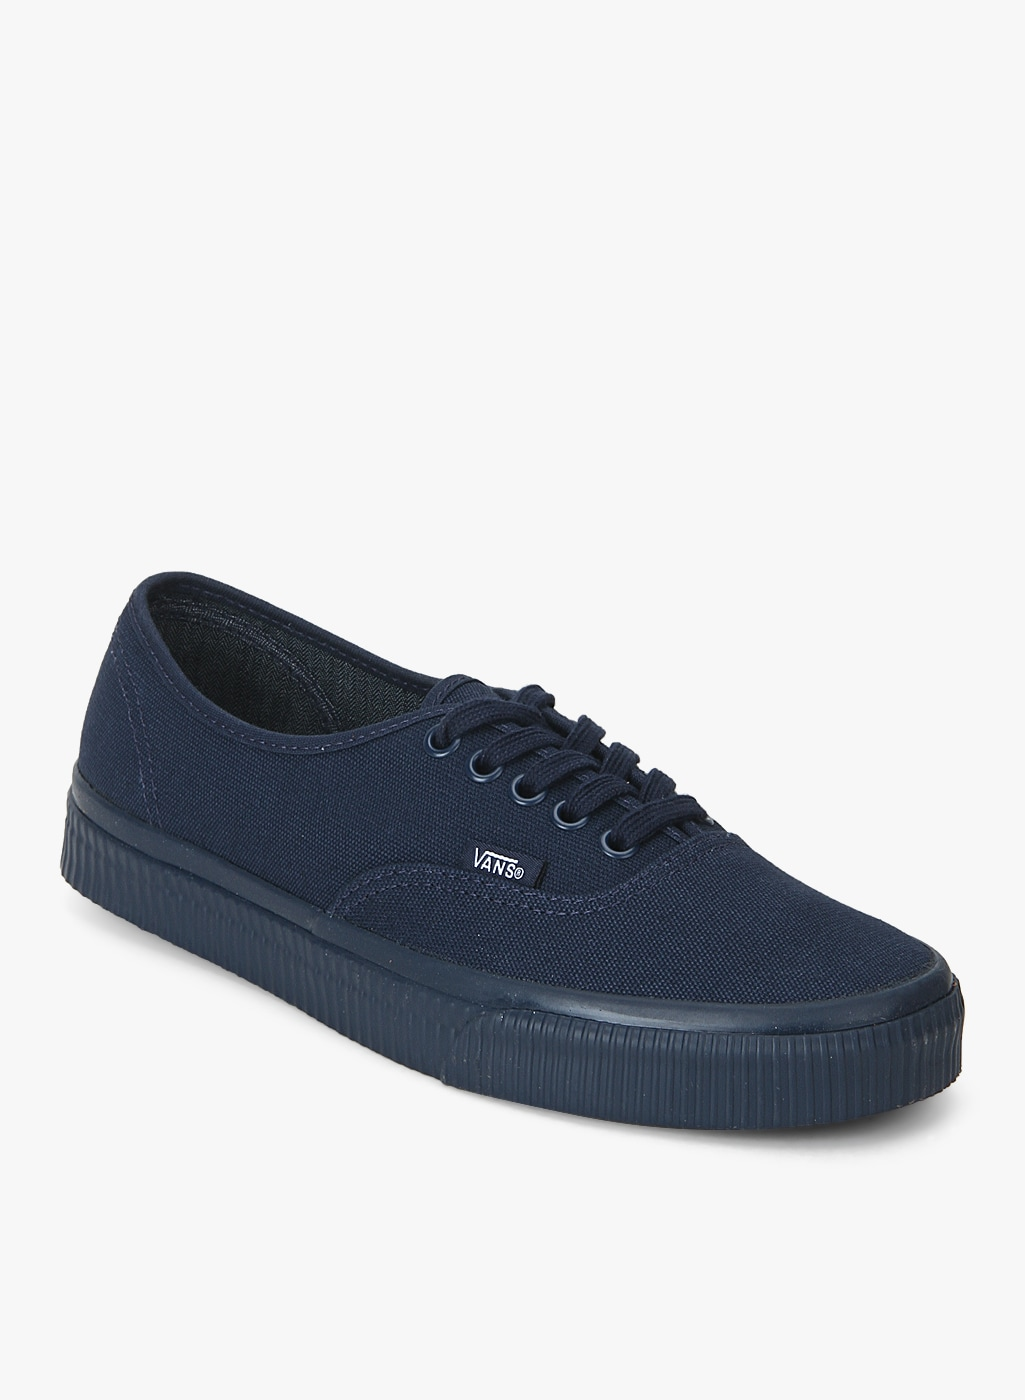 a57d2f0121eccb Vans Navy Blue Blue Shoes - Buy Vans Navy Blue Blue Shoes online in India